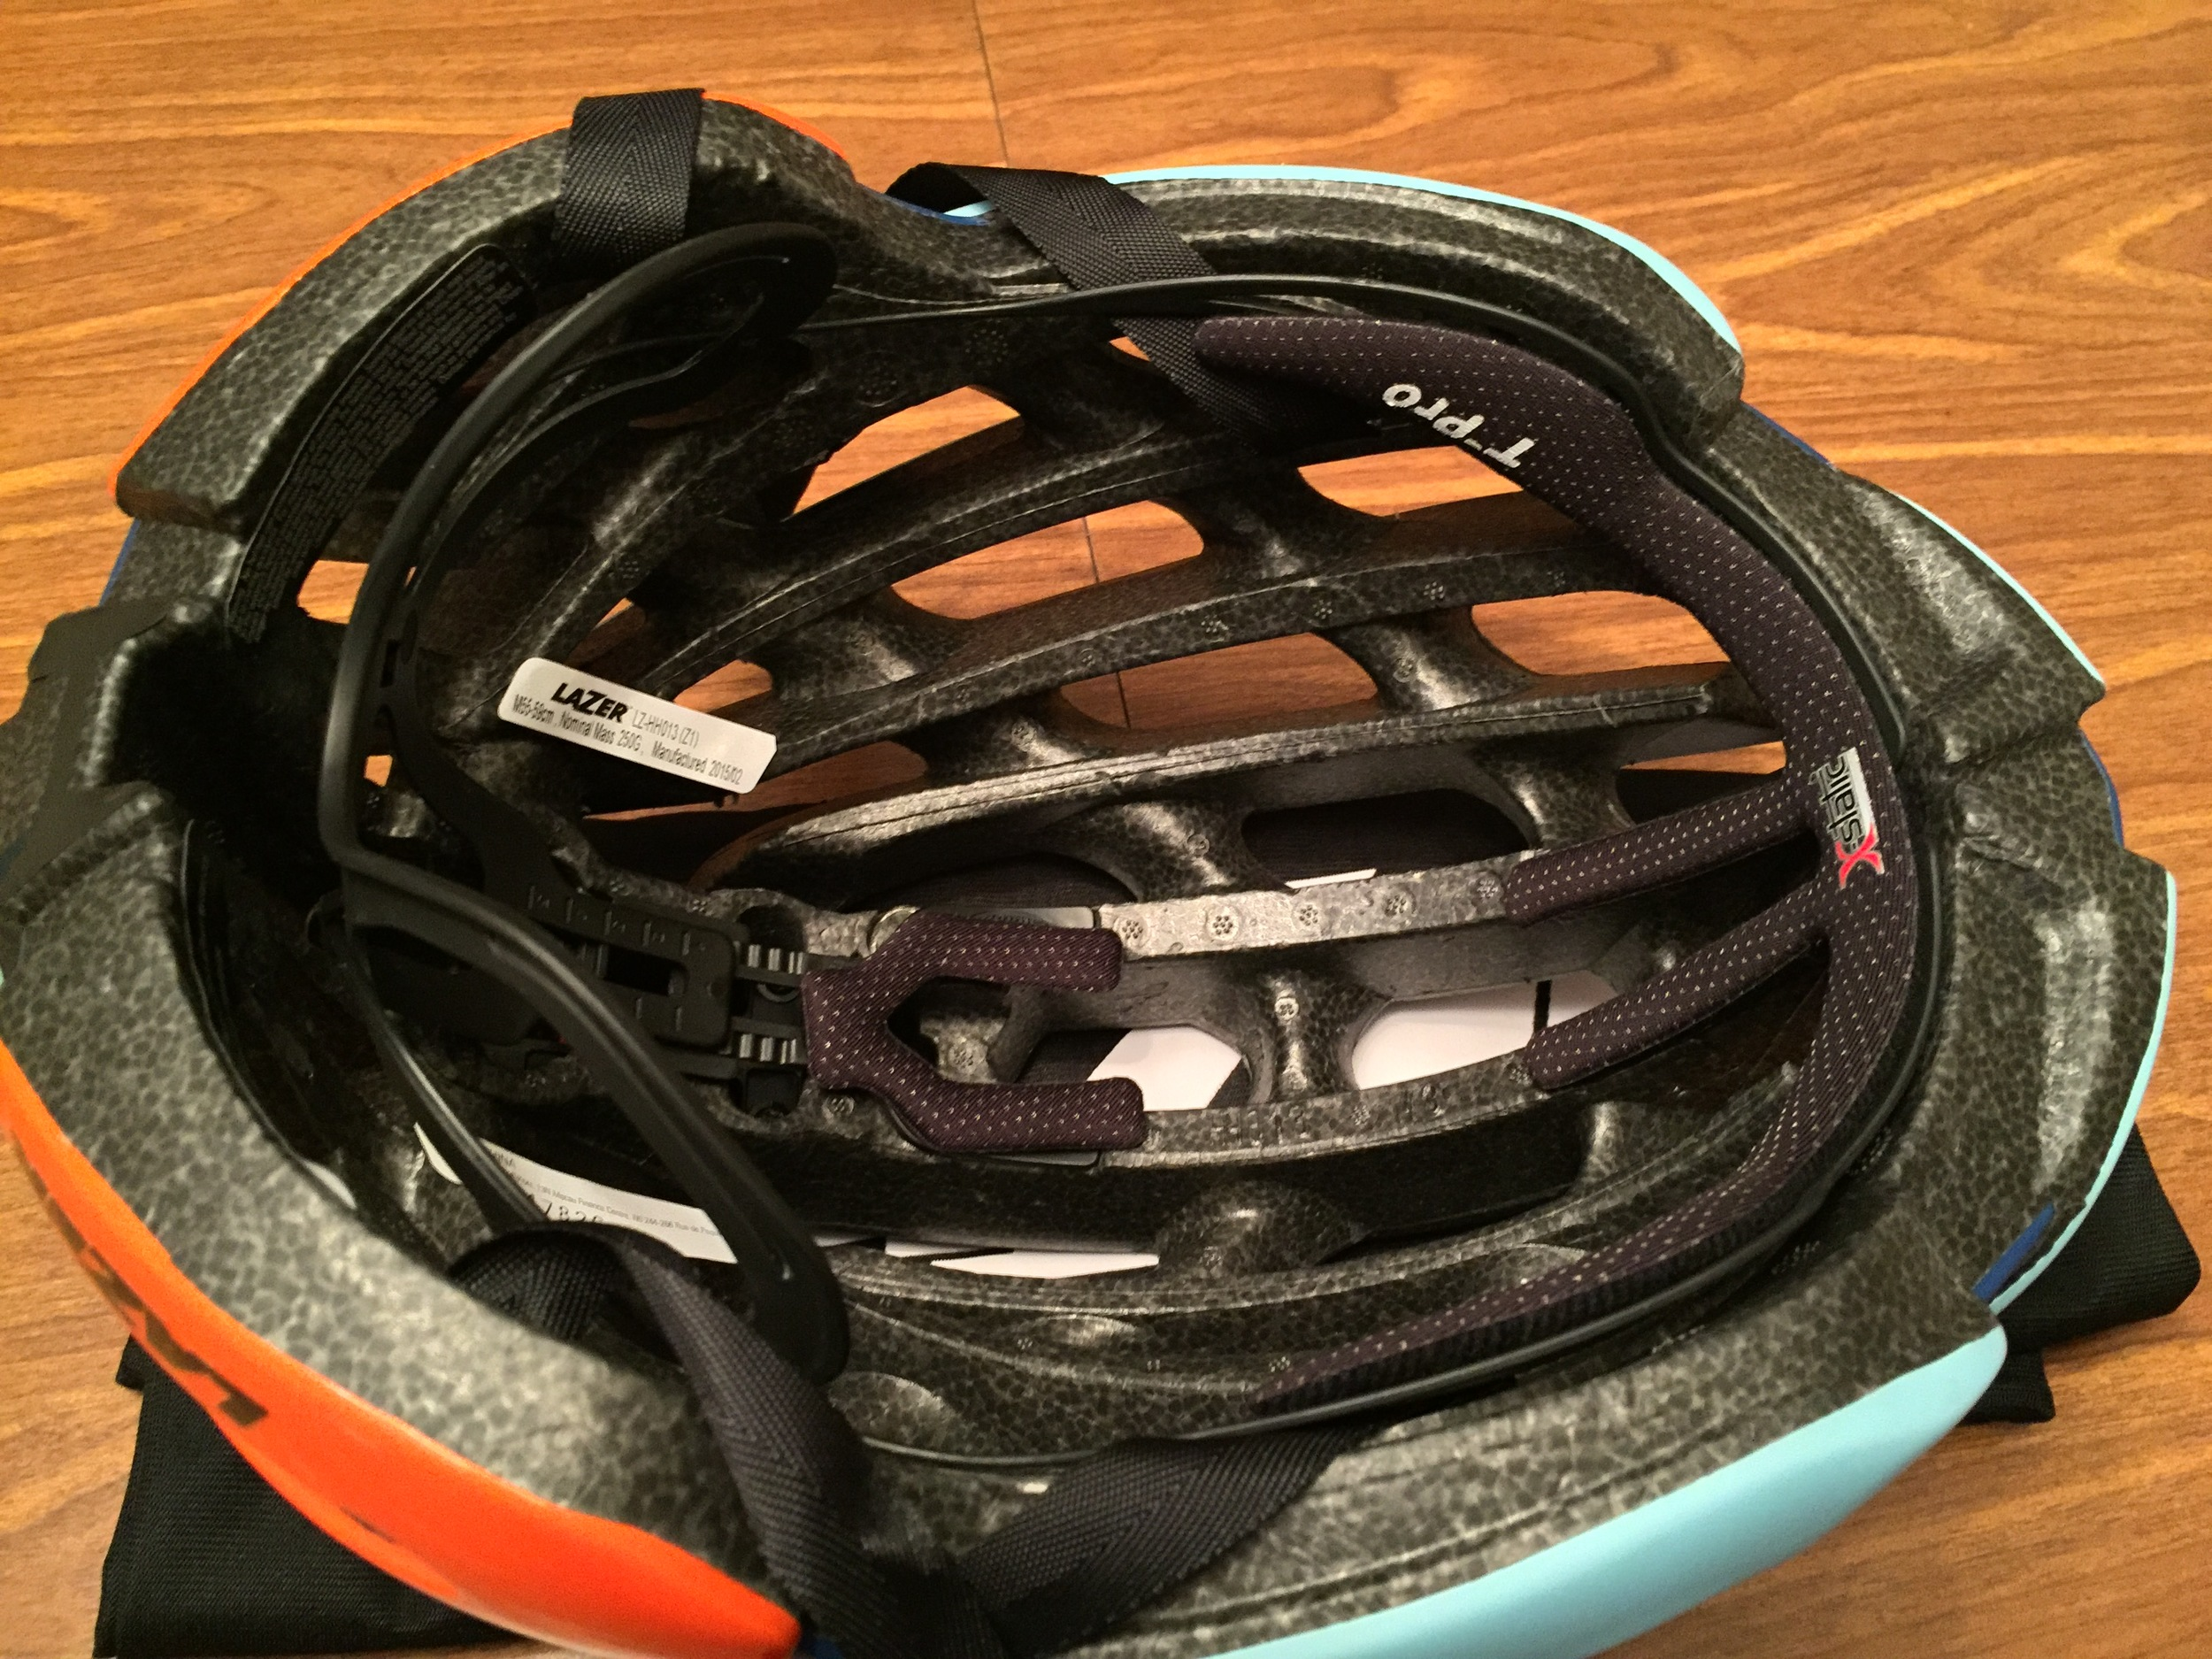 A view of the inside of the Z1 with the T-Pro temple impact protection as well as the adjustable head basket only found on Lazer helmets.